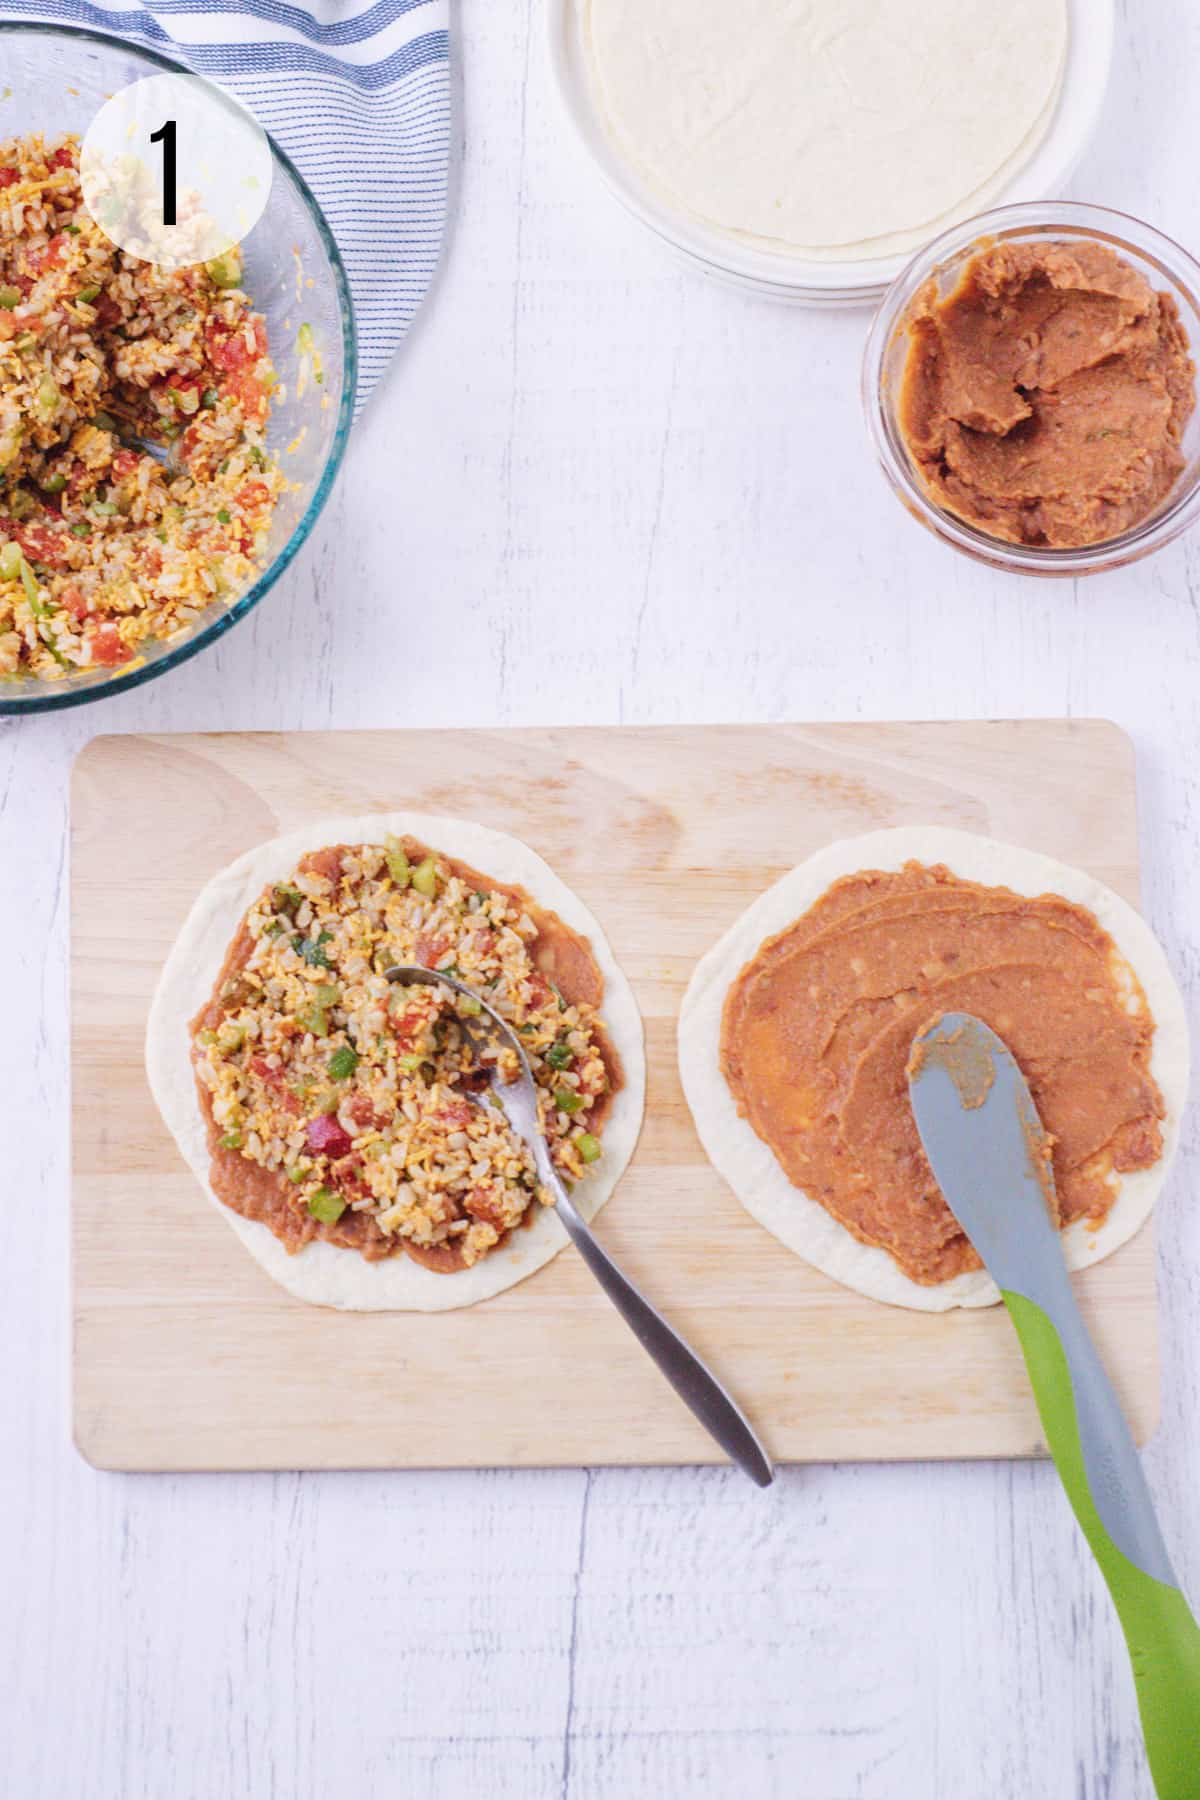 Wooden cutting board with flour tortillas spread using spoon and green and grey rubber spatula with vegetarian burrito filling and refried beans with bowls of each in upper background.